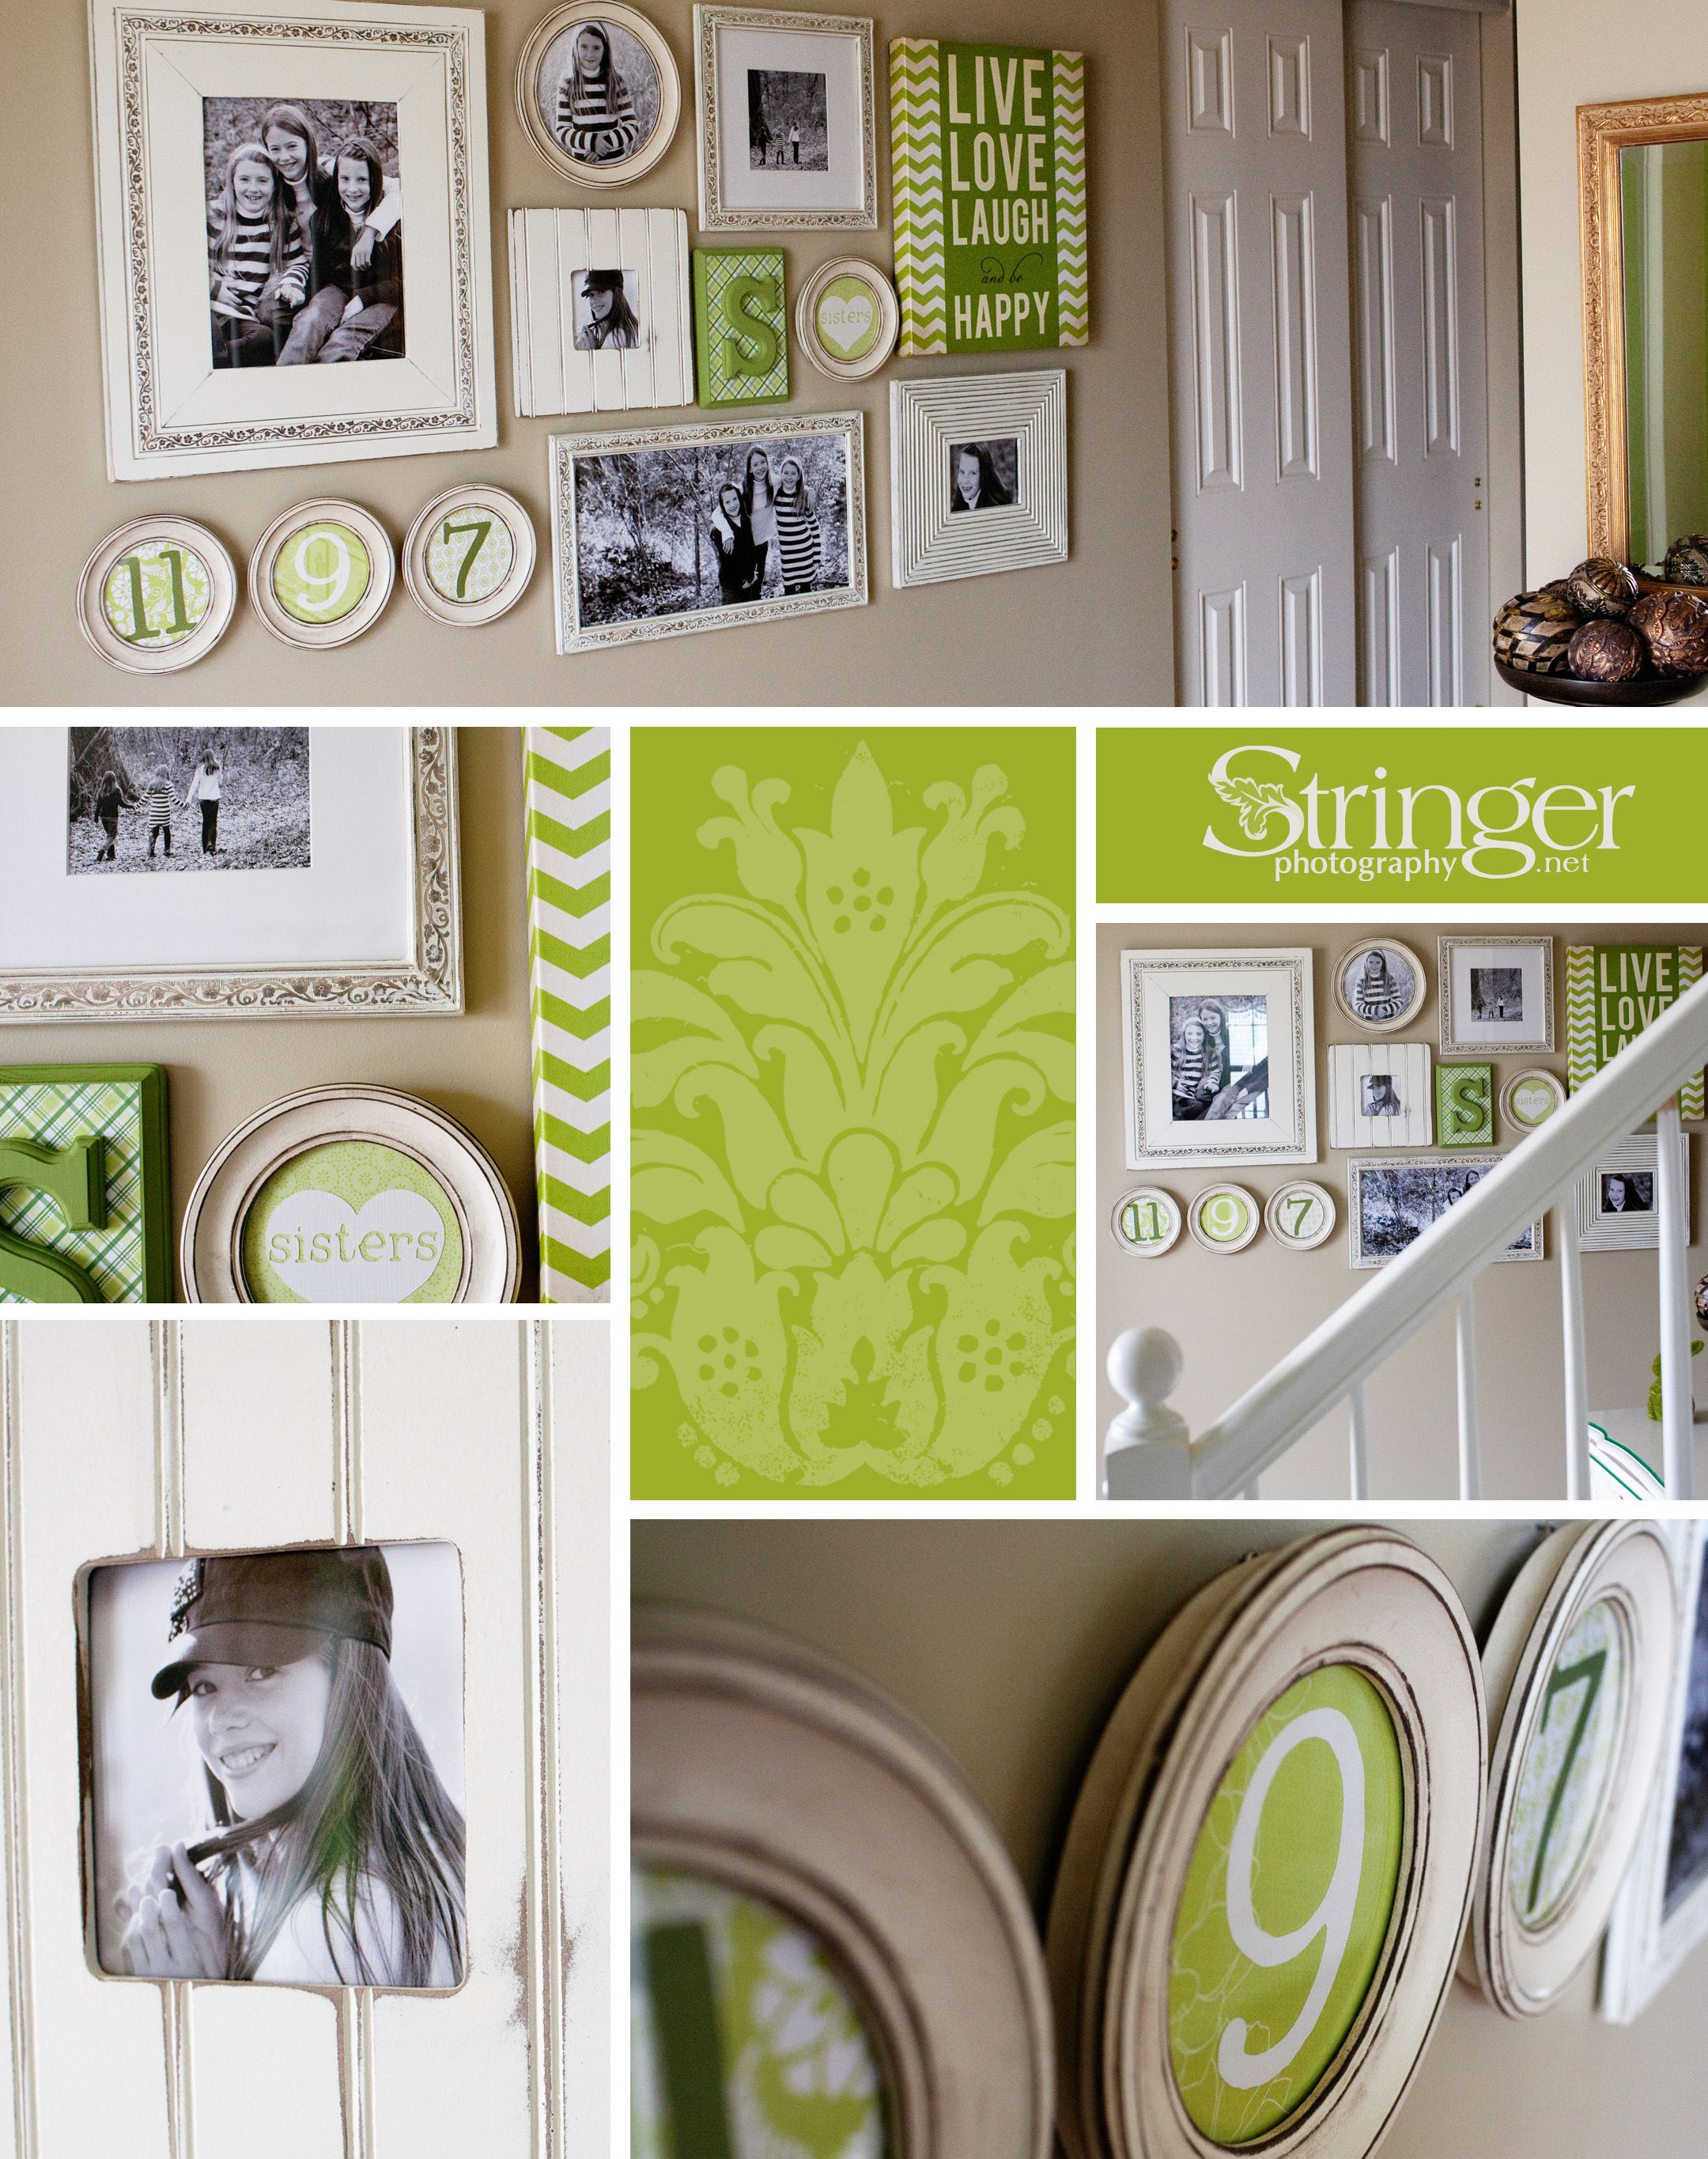 Lori Stringer did a great job designing the wall collage in her ...